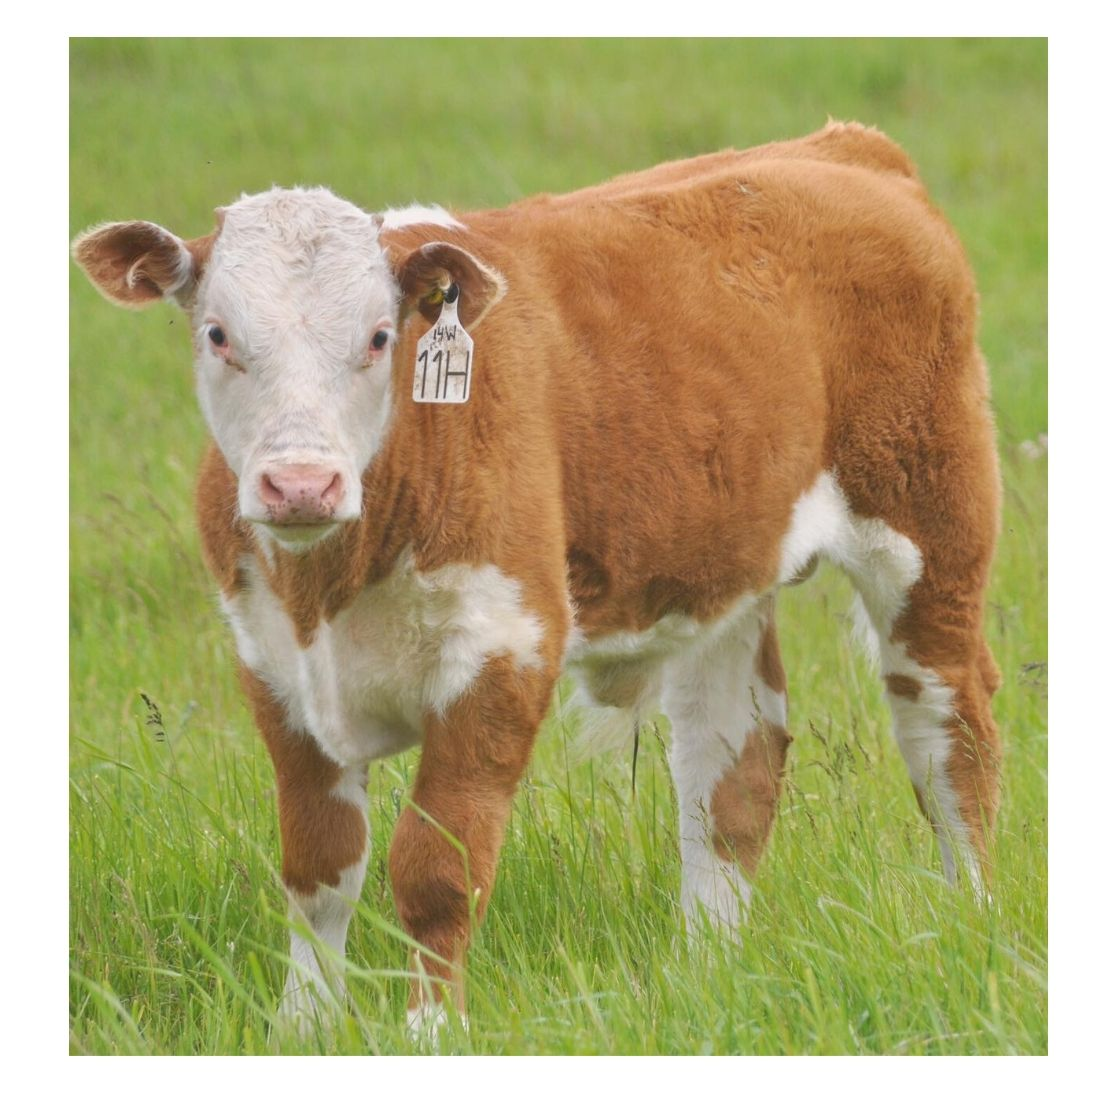 Hereford Bull Calf #hereford #herefordcalf #herefordbull